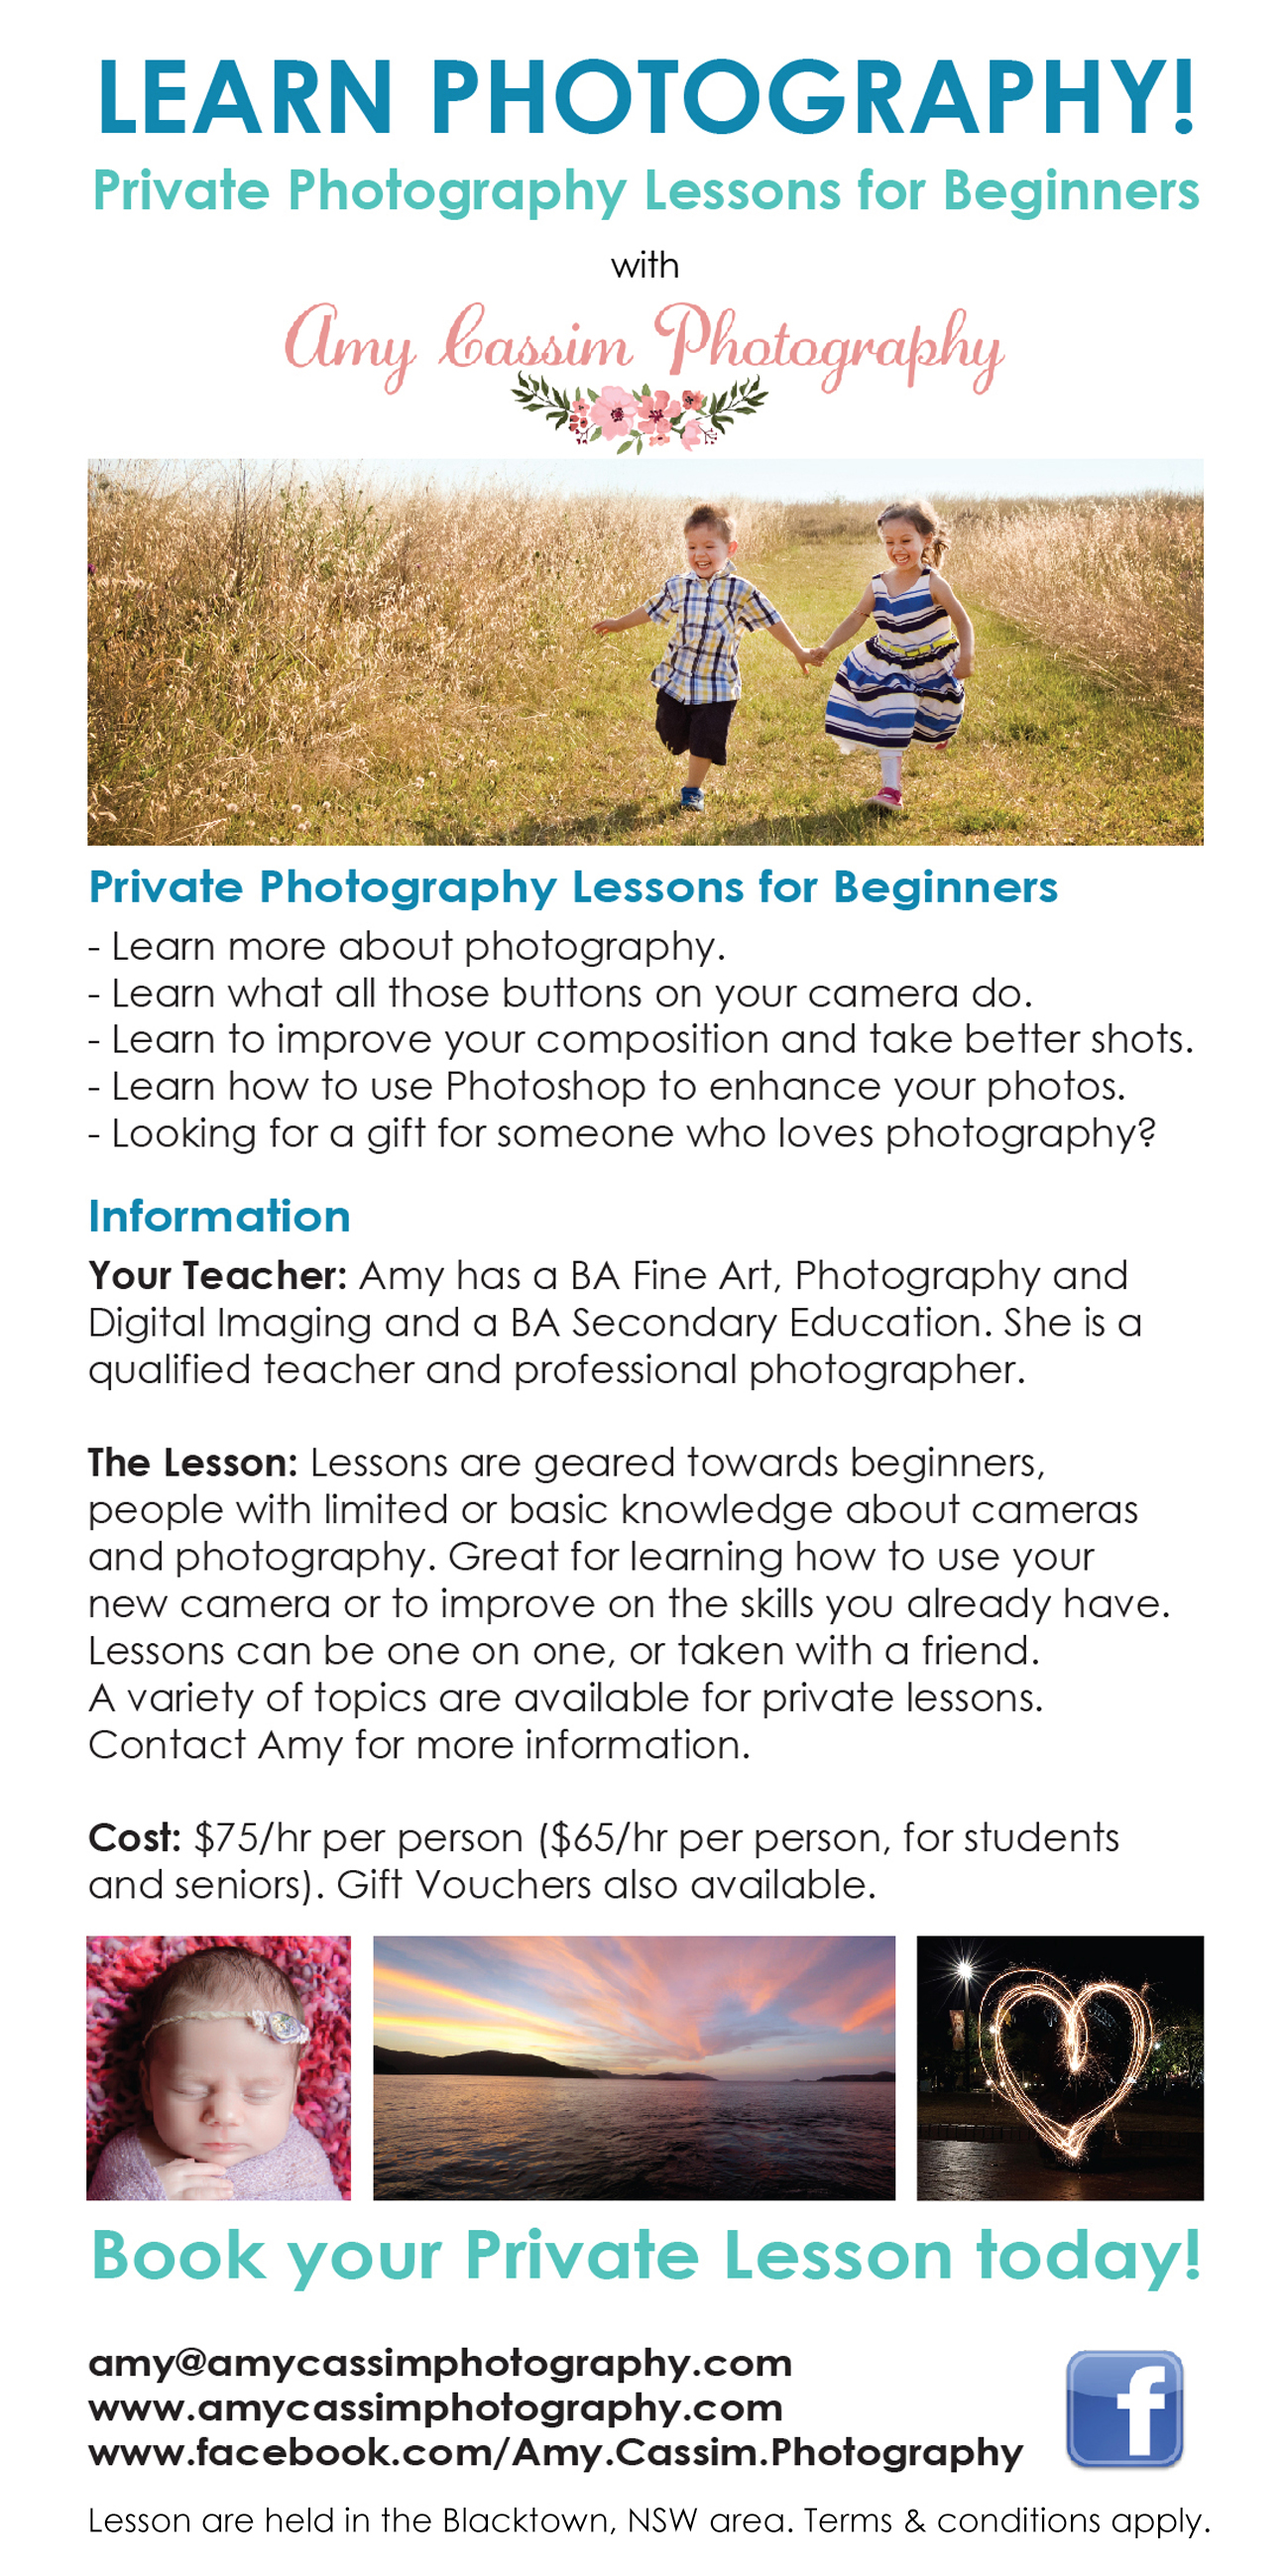 Amy Cassim Photography | Private Photography Lessons